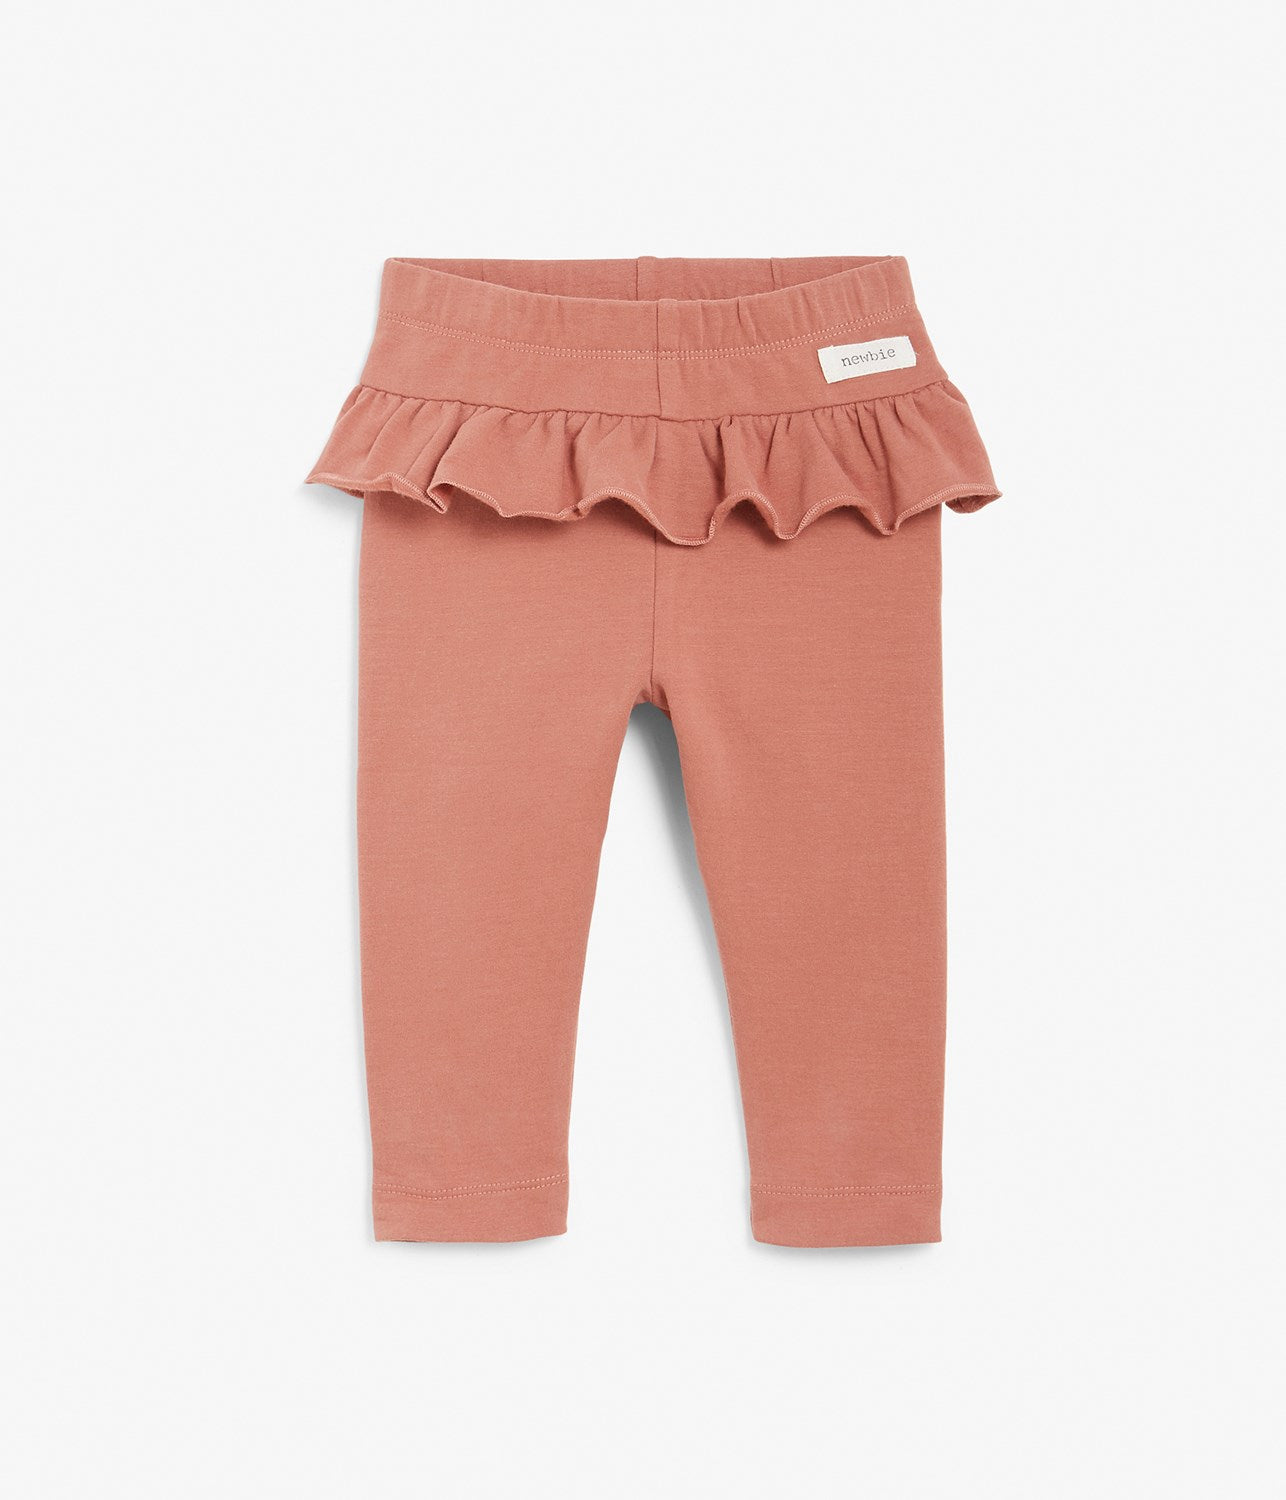 Baby pink leggings with ruffles